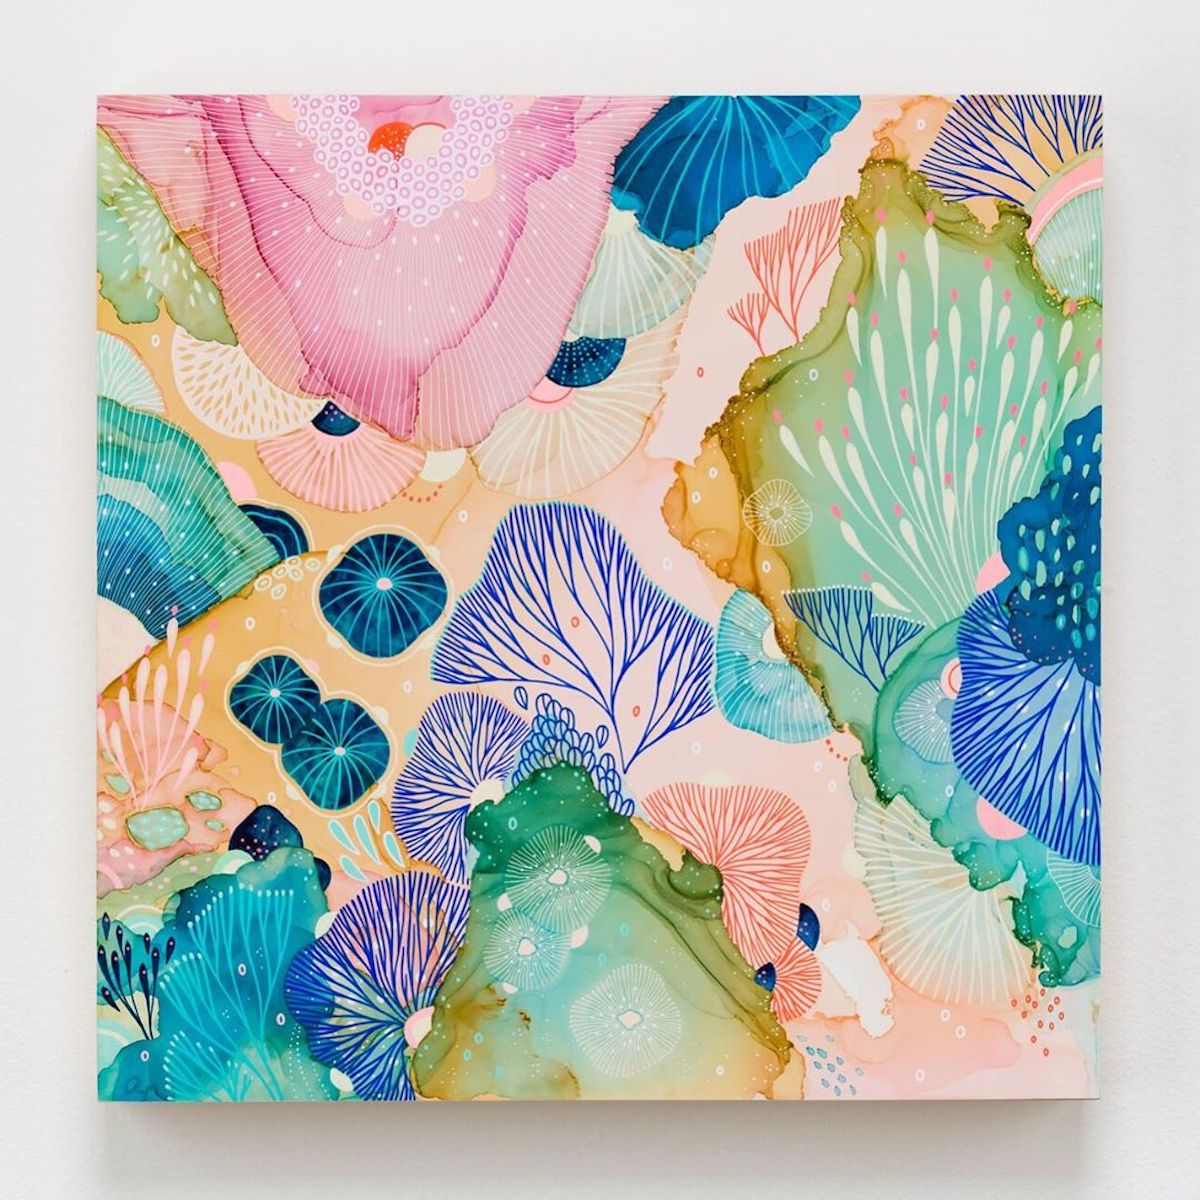 Paintings by Yellena James